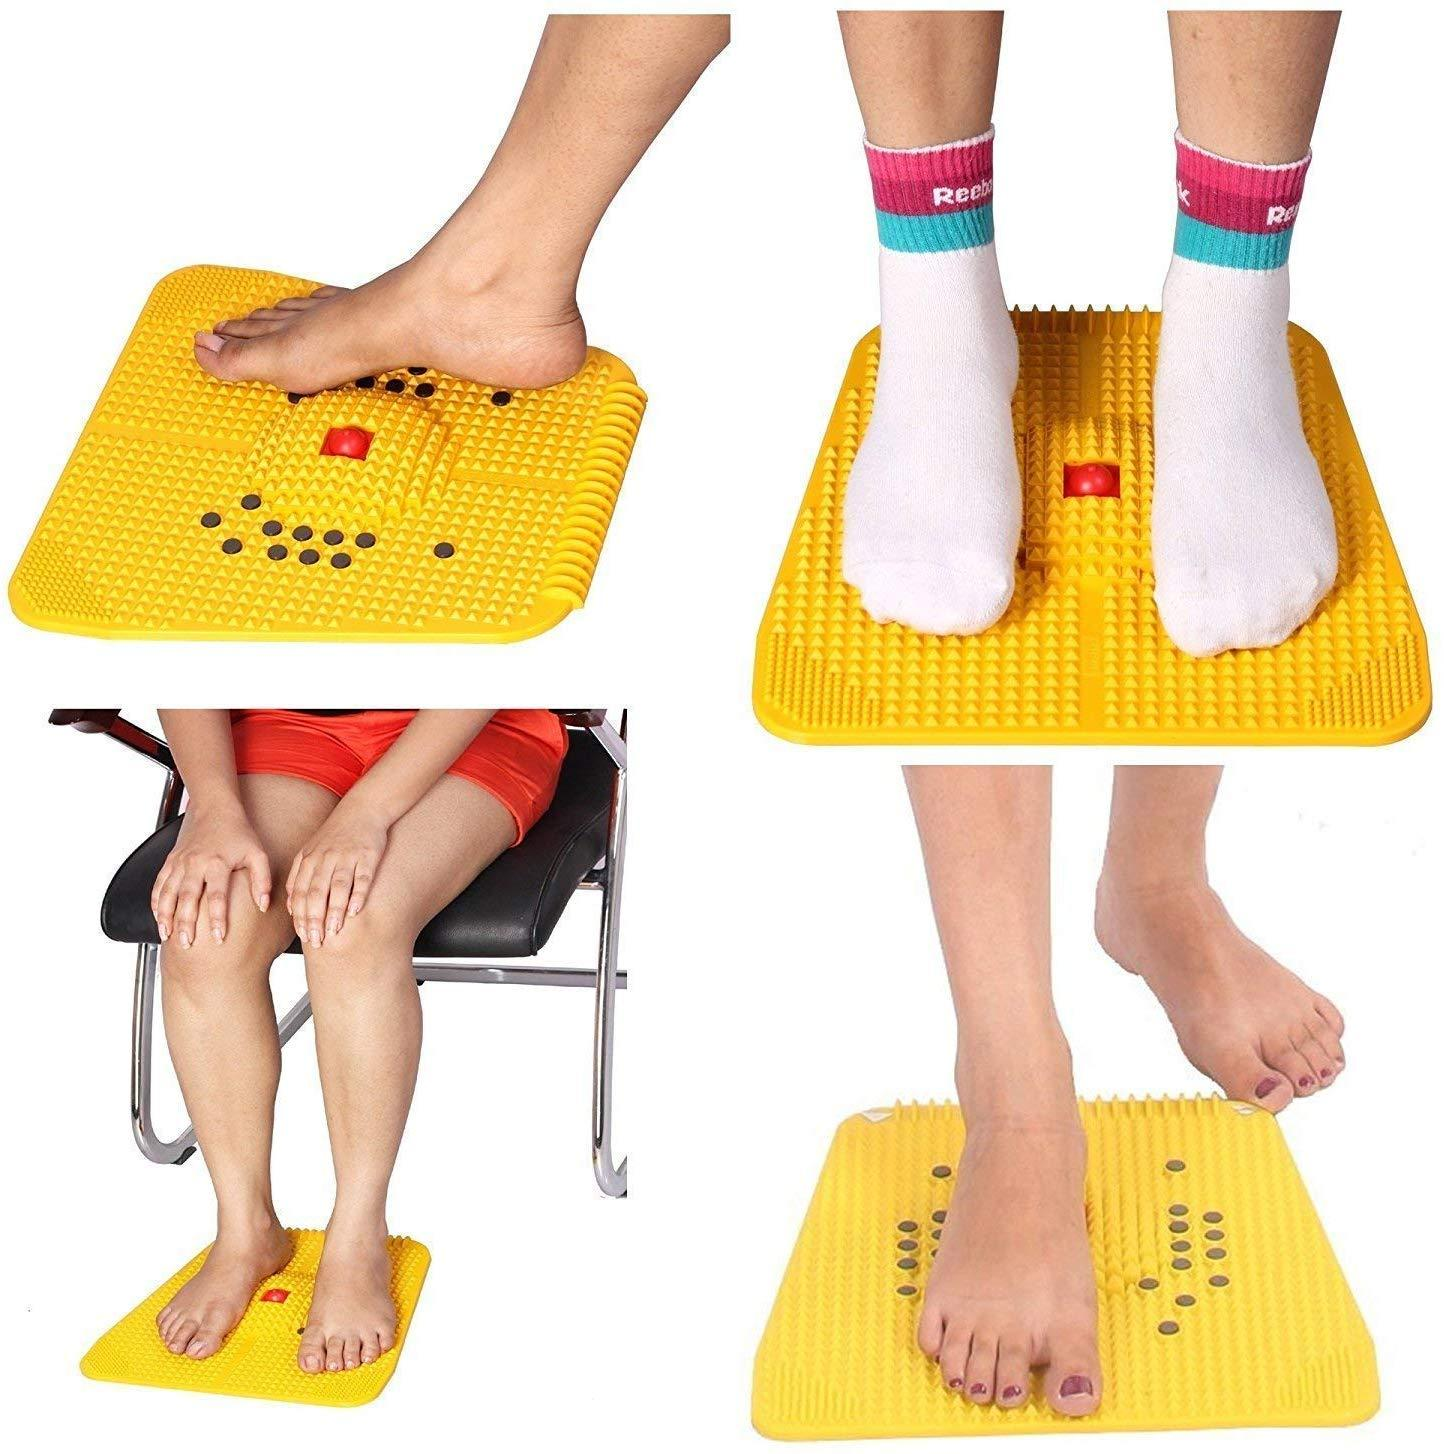 Acupressure Magnetic Foot Mat For Blood Circulation